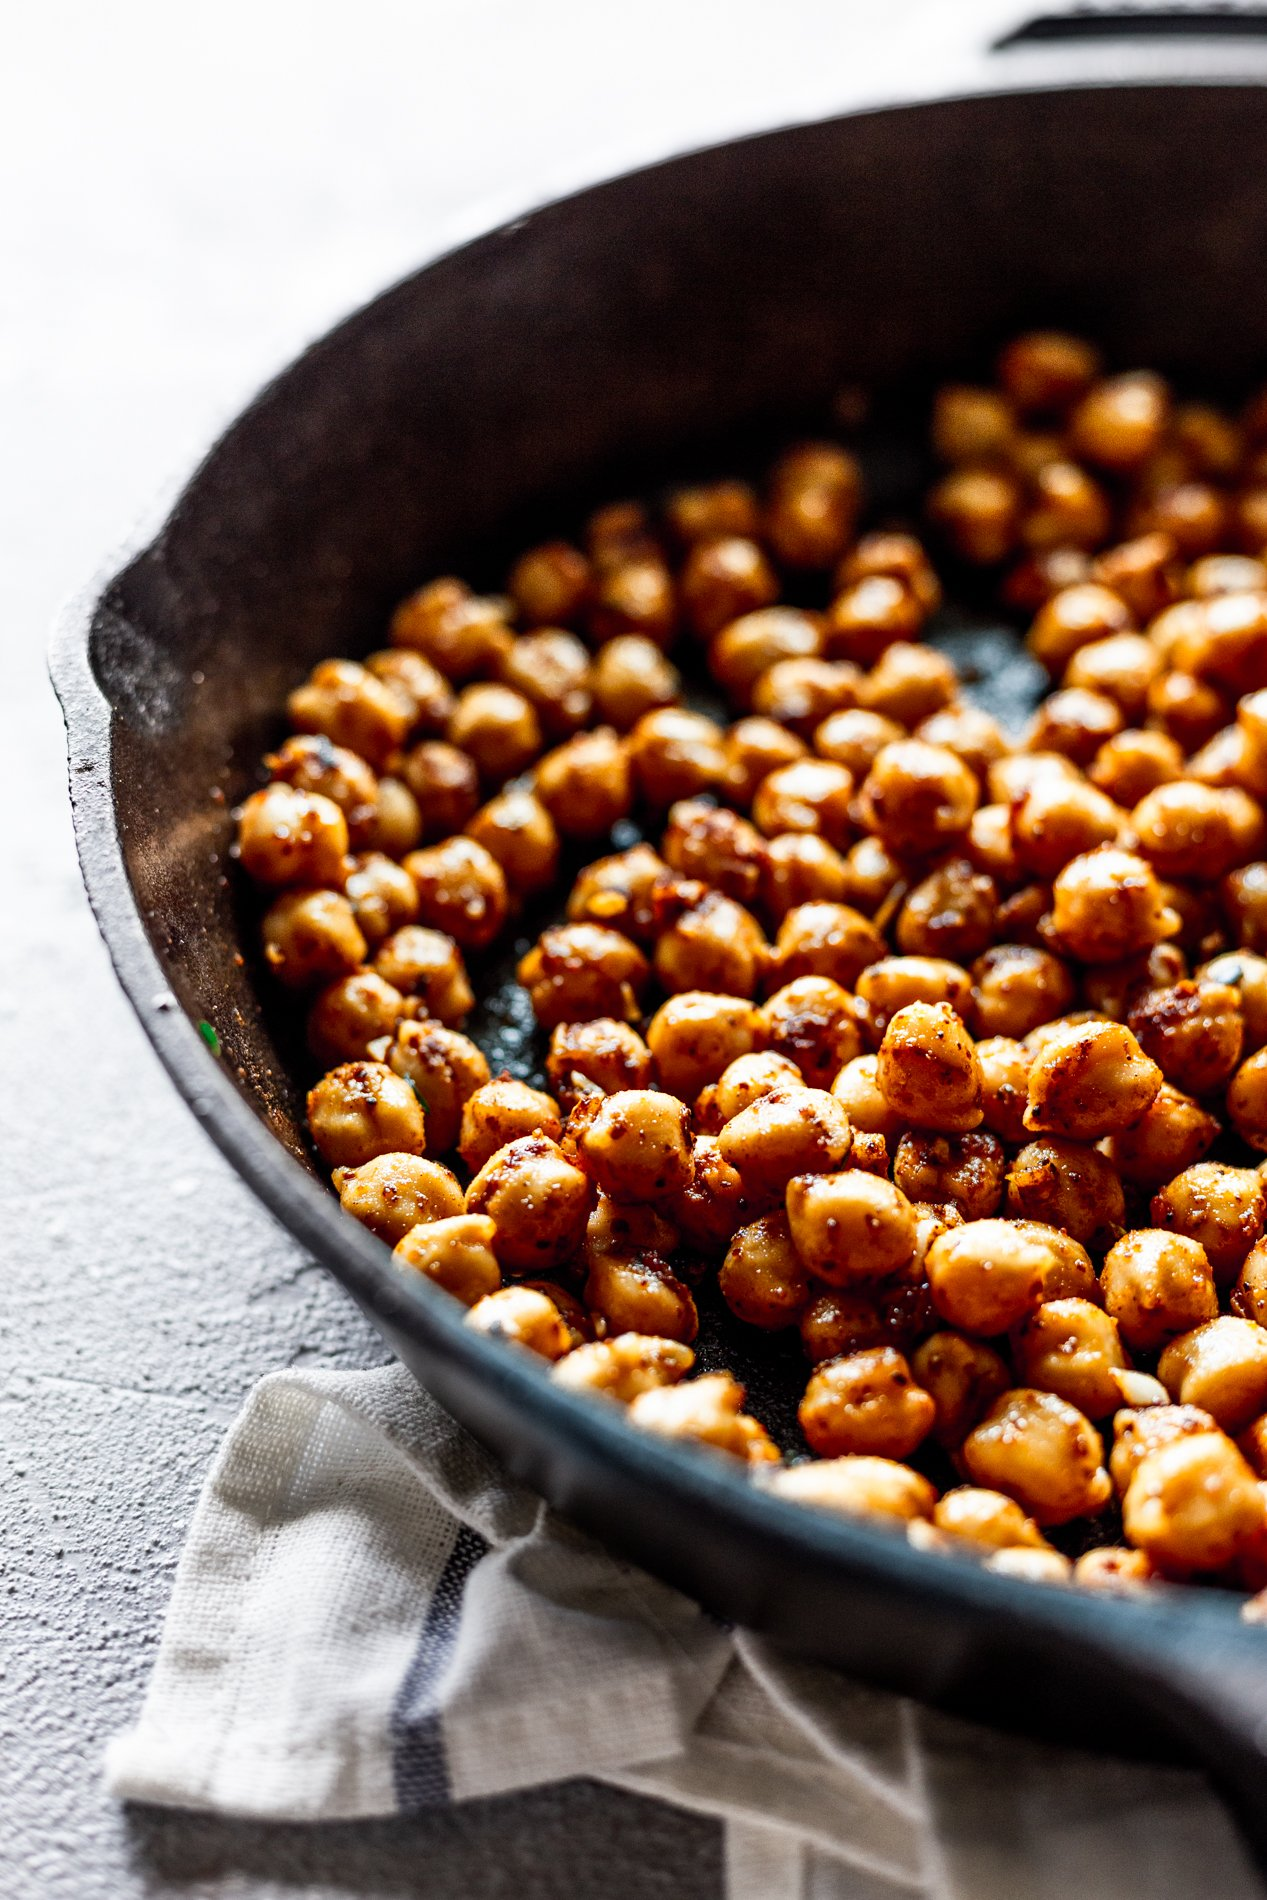 angled view of a cast iron skillet with harissa-crisped chickpeas